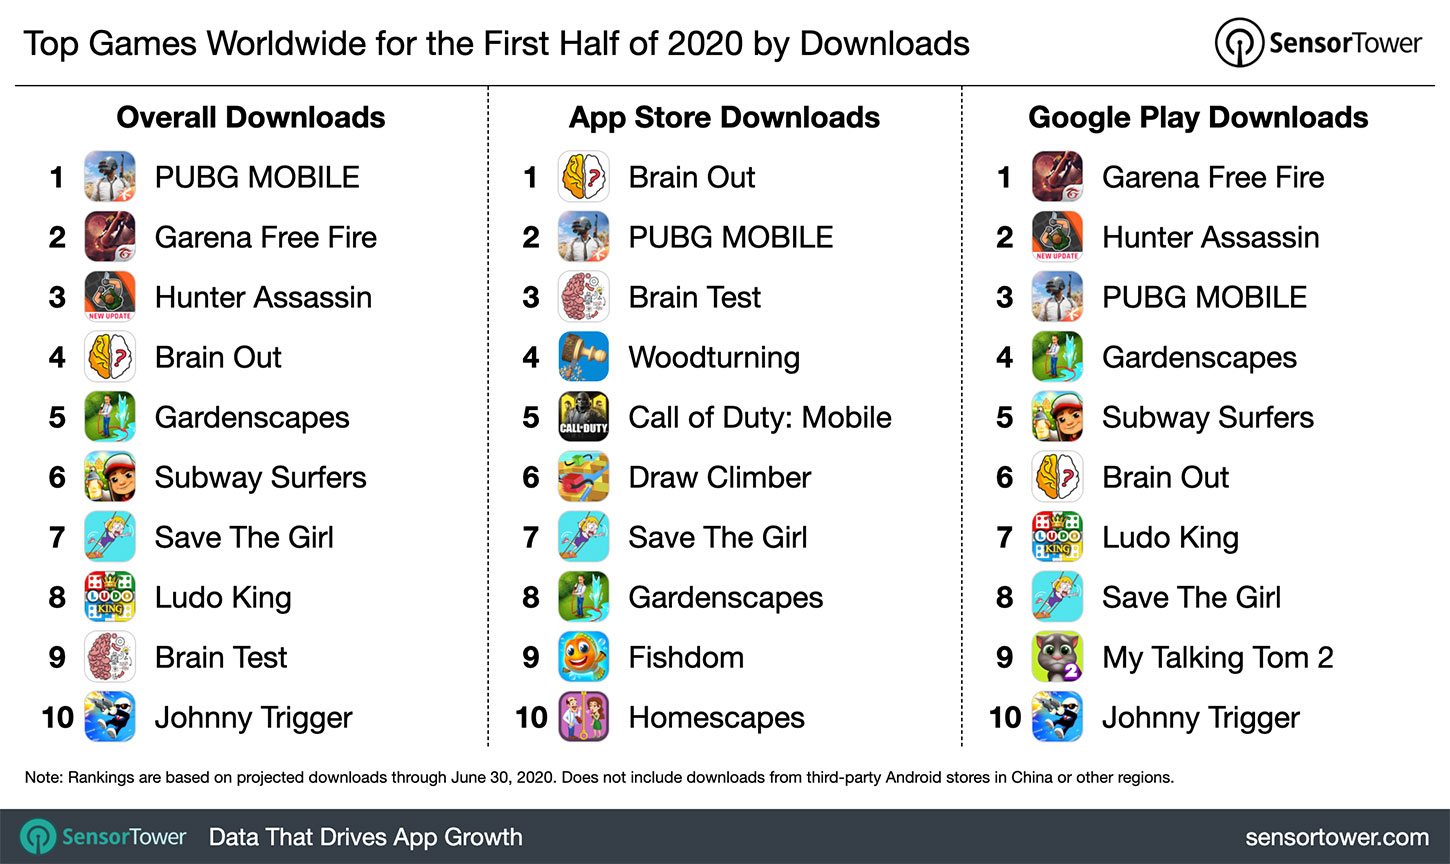 1H 2020 Most Downloaded Games Worldwide